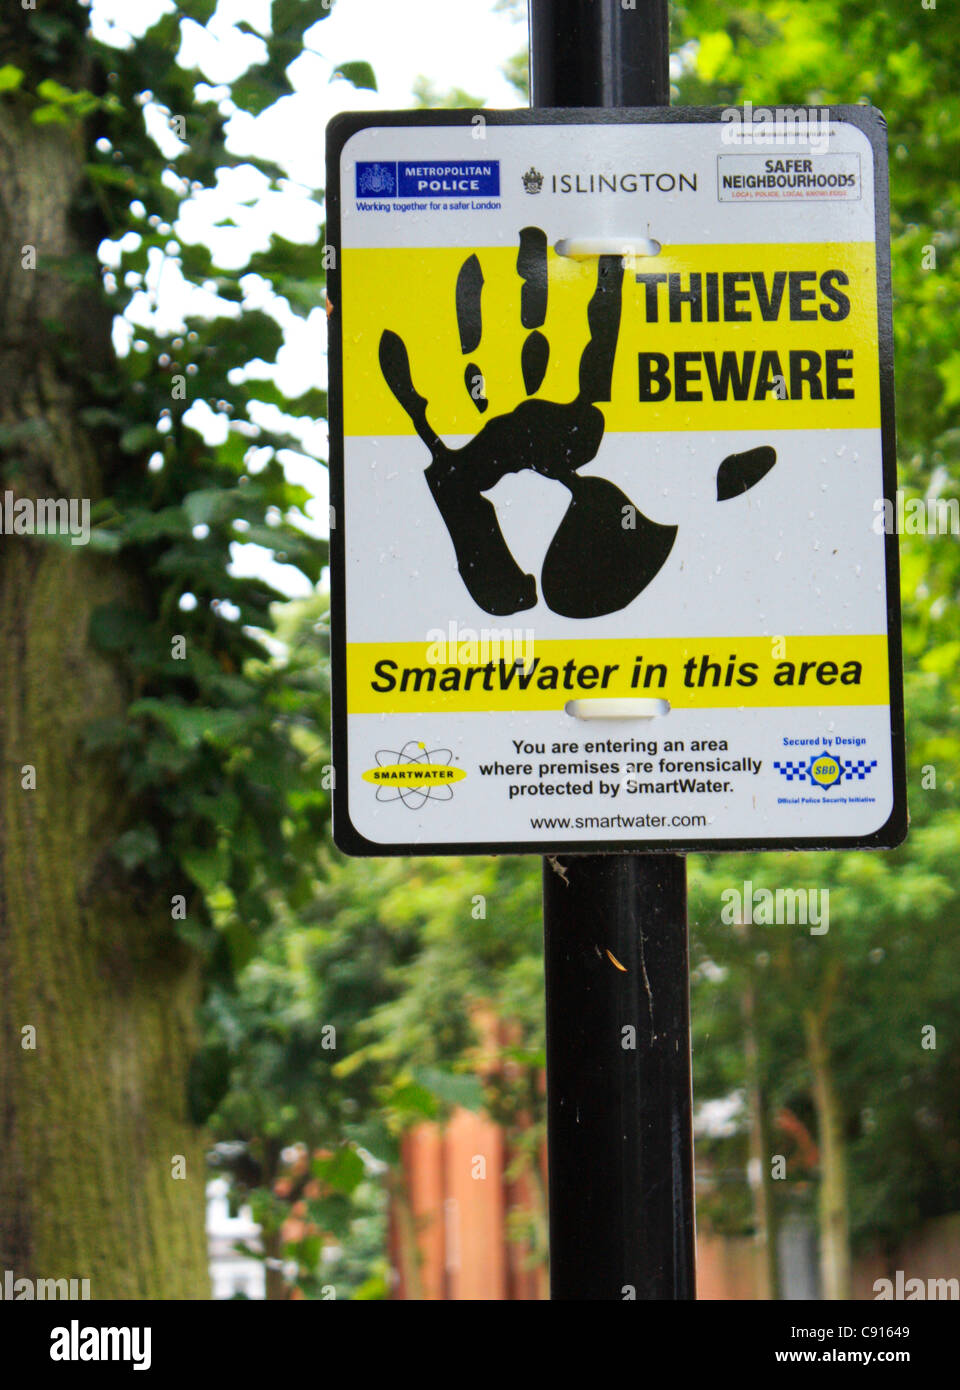 thieves beware sign - Stock Image